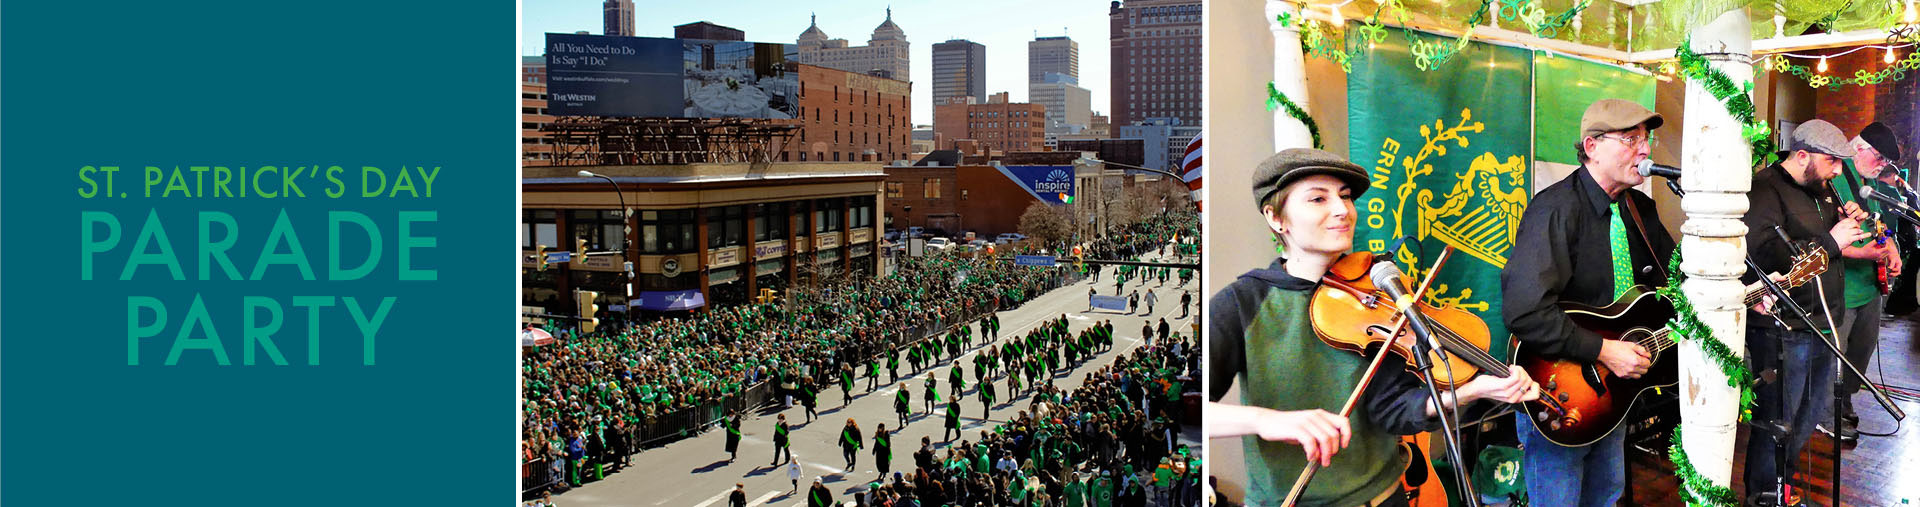 St. Patrick's Day Parade Party